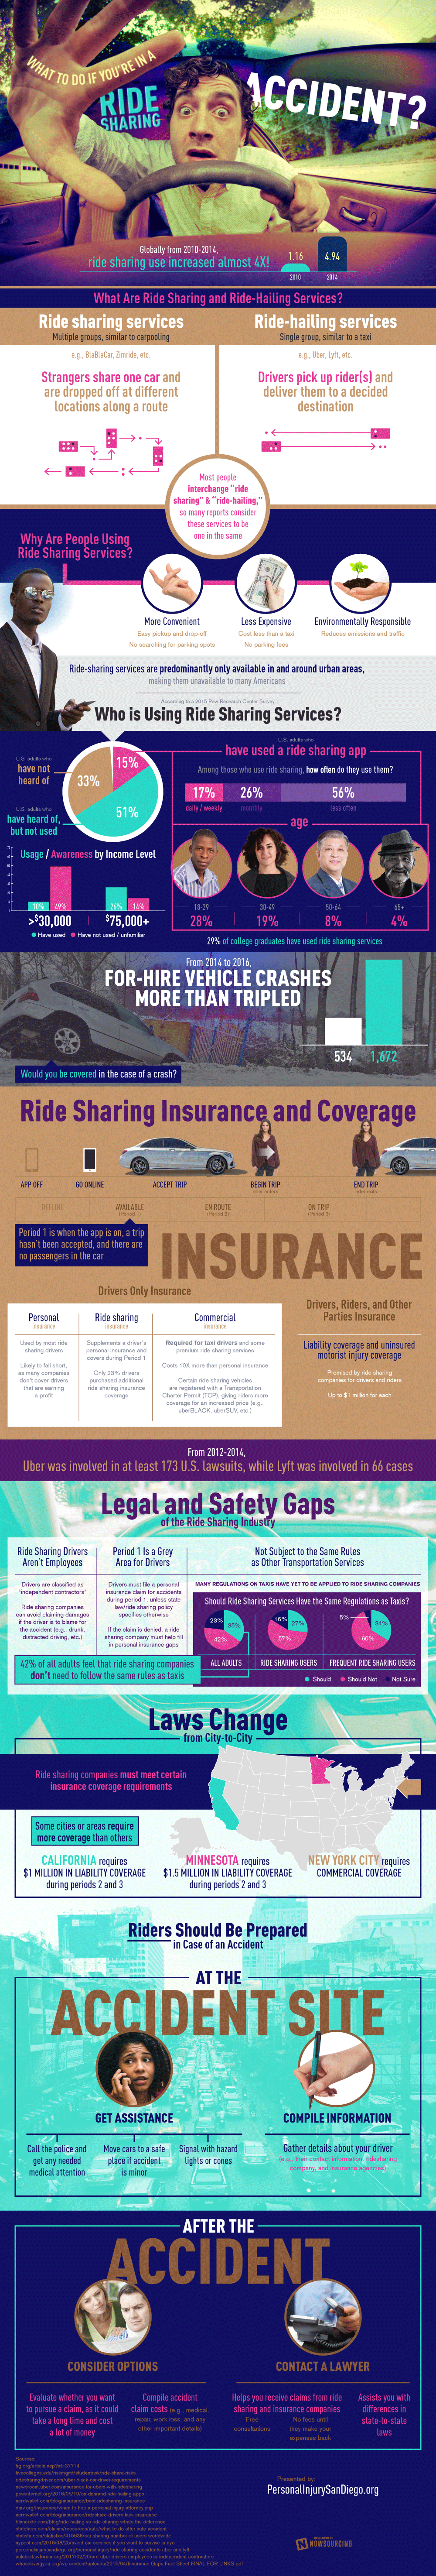 How To Deal With A Ride-Sharing Accident - Infographic